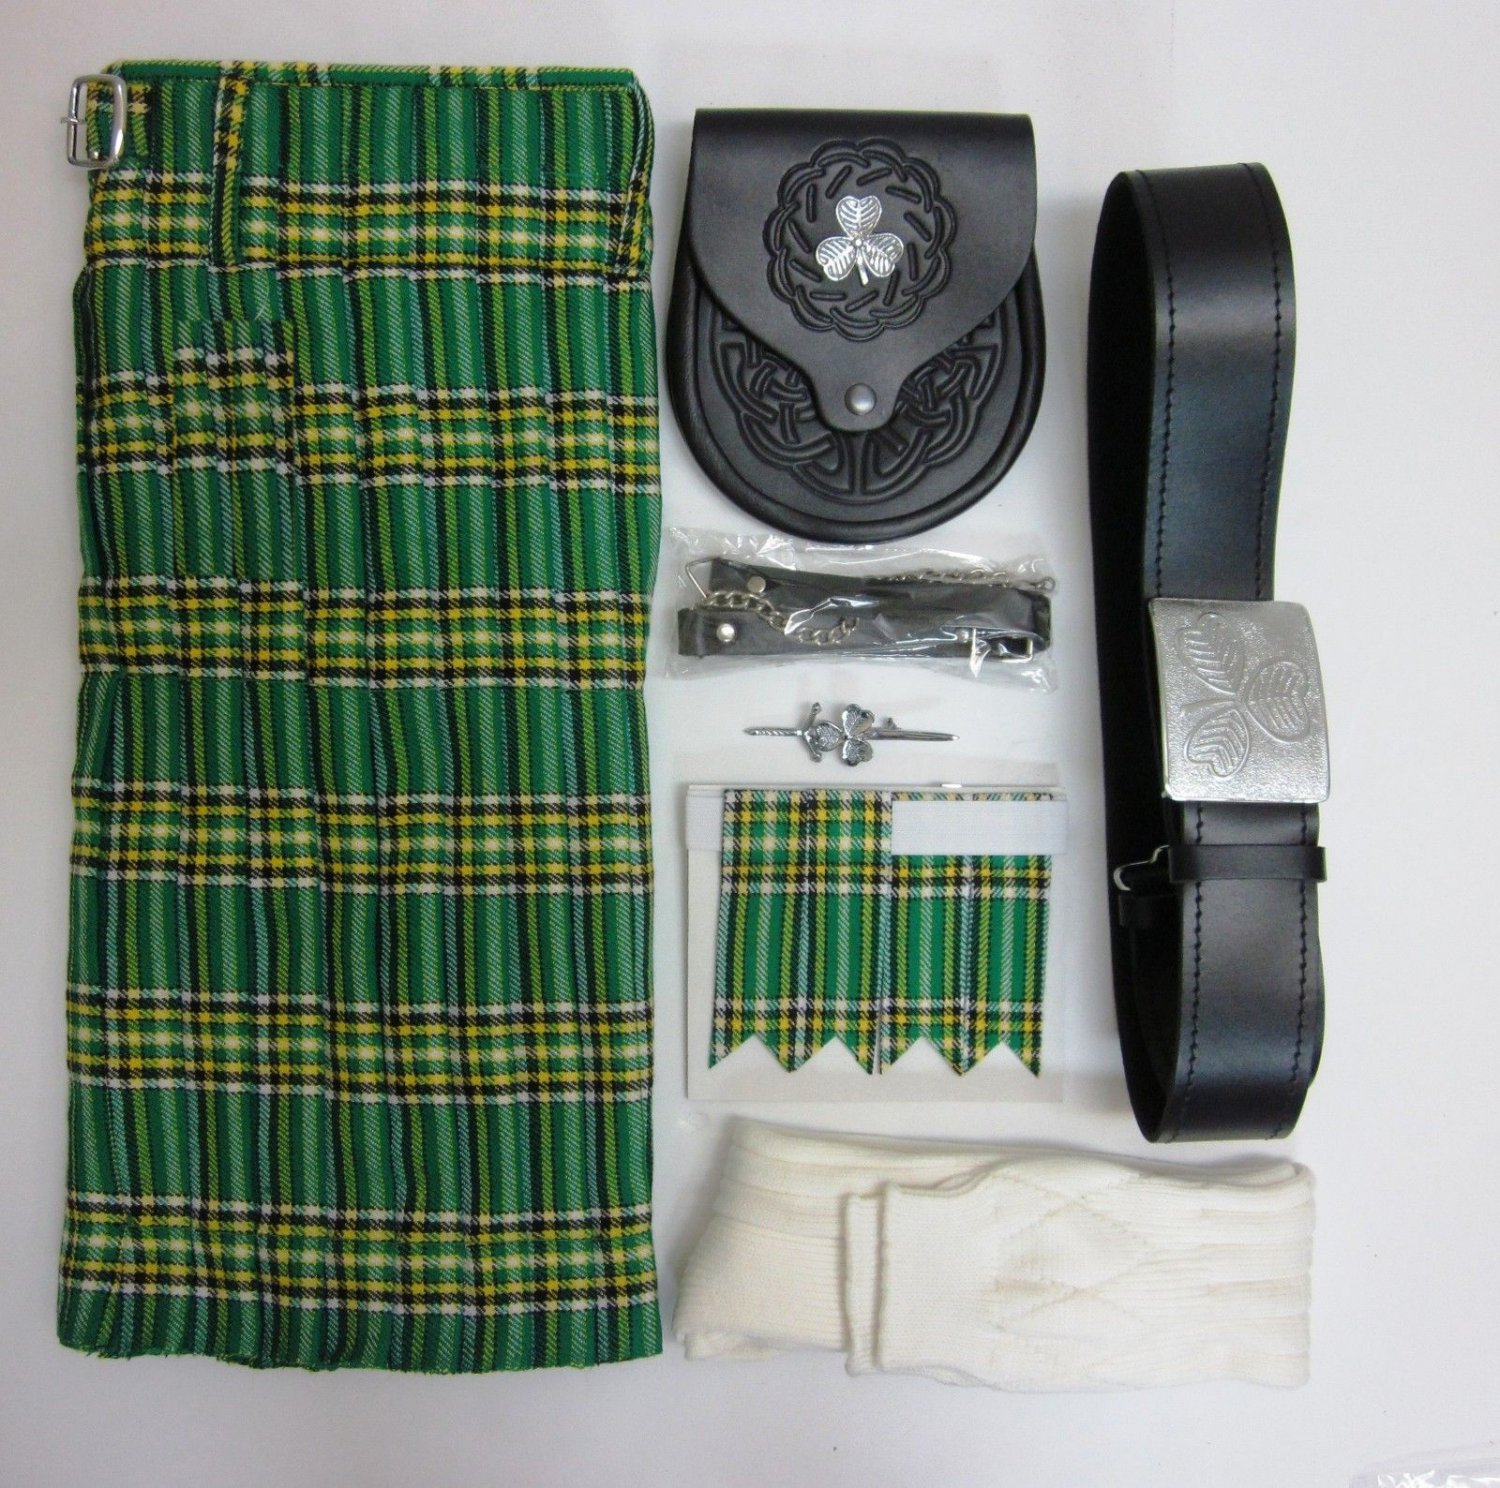 Waist 50 Irish National Tartan Kilt with Sporran Belt Hose and Kilt Pin Flashes